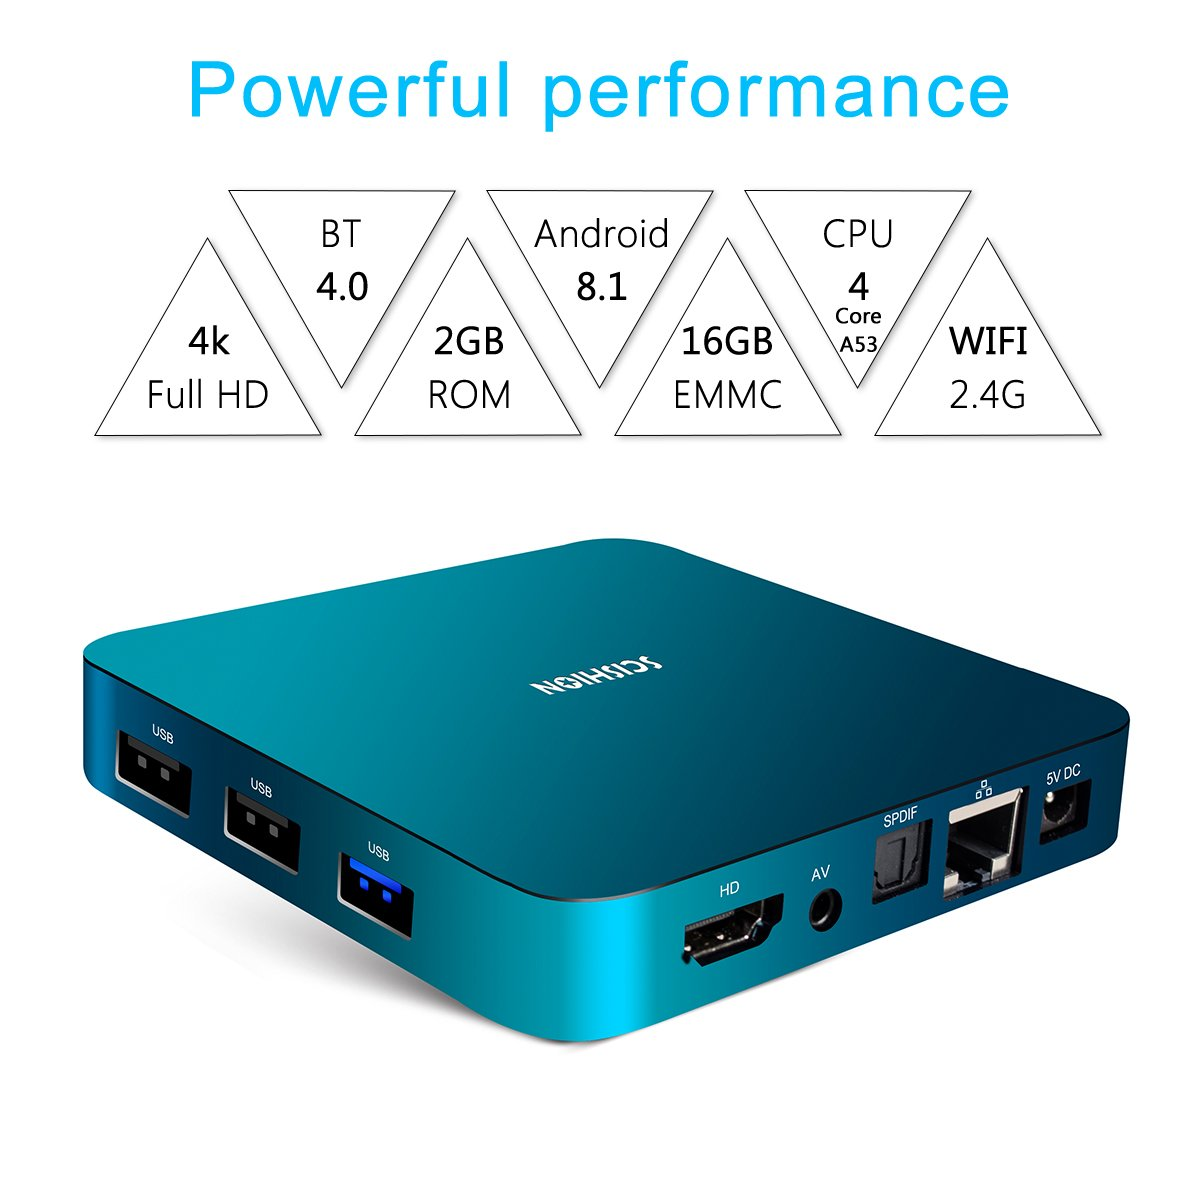 Android 8.1 TV Box with Voice Remote, RK3328 Quad Core 64bit 2GB DDR3 16GB eMMC Memory Smart TV Box with Bluetooth 4.0 WiFi Ethernet HDMI HD 4K Media Player Set Top Box by YAGALA (Image #4)